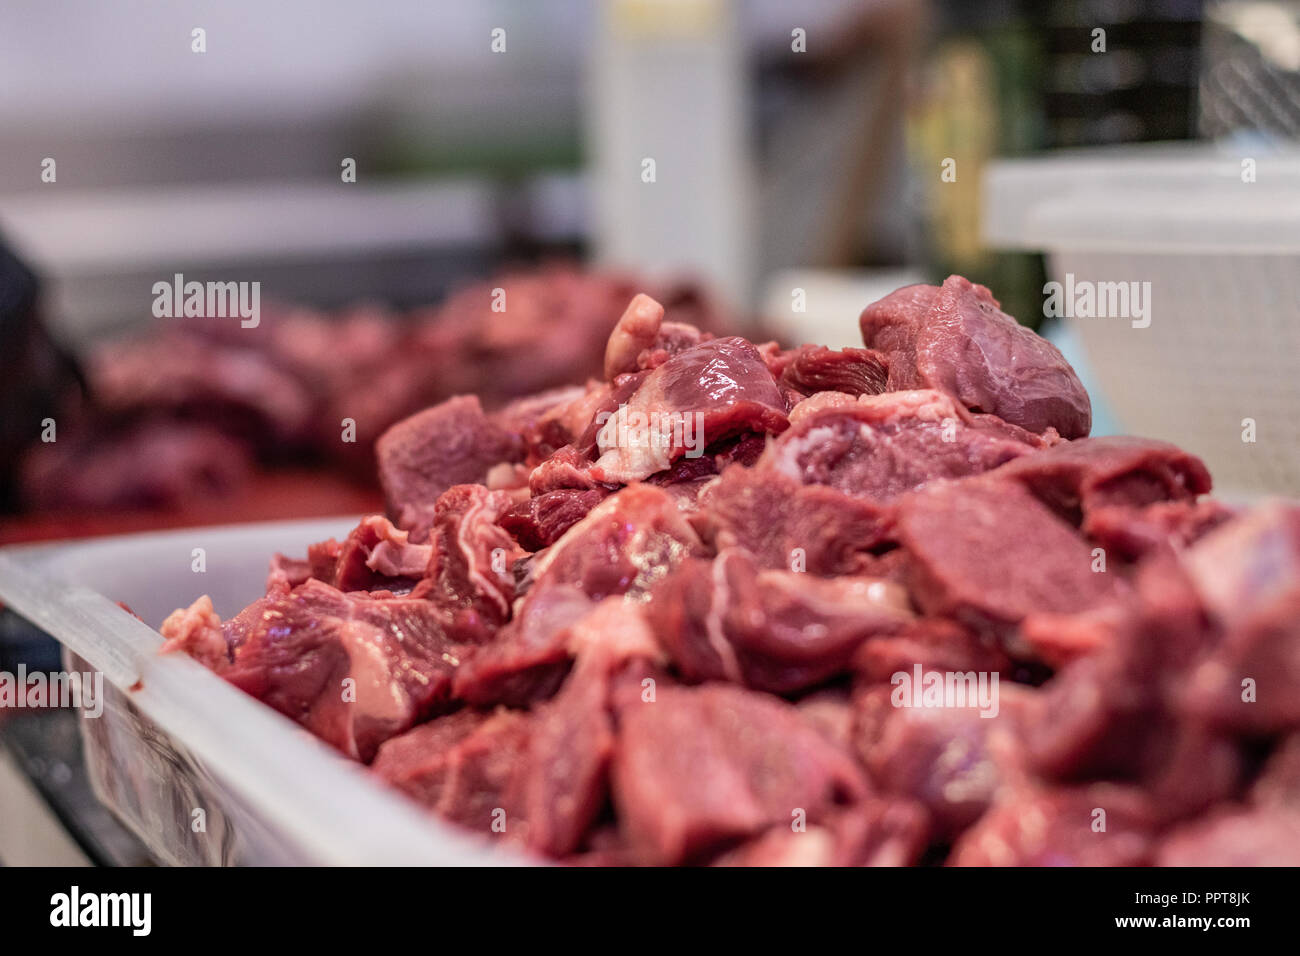 Gourmet chef, preparing a charity dinner in an Italian restaurant in Rome, Italy. Steaks, chops, turkey, and fillets for the homeless on Christmas. - Stock Image